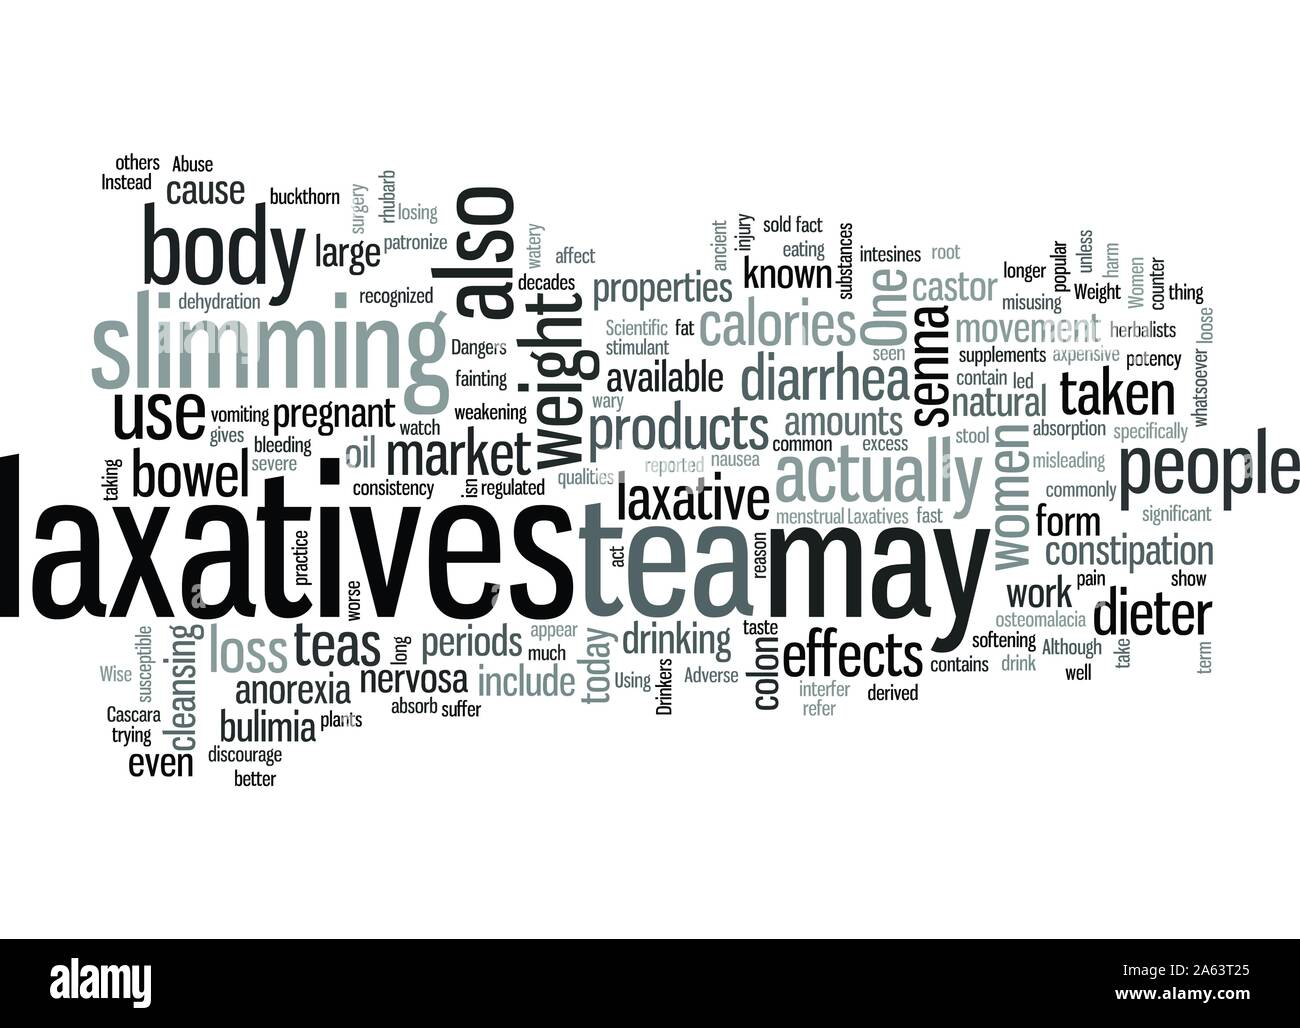 Laxatives And Weight Loss Stock Vector Art & Illustration, Vector ...